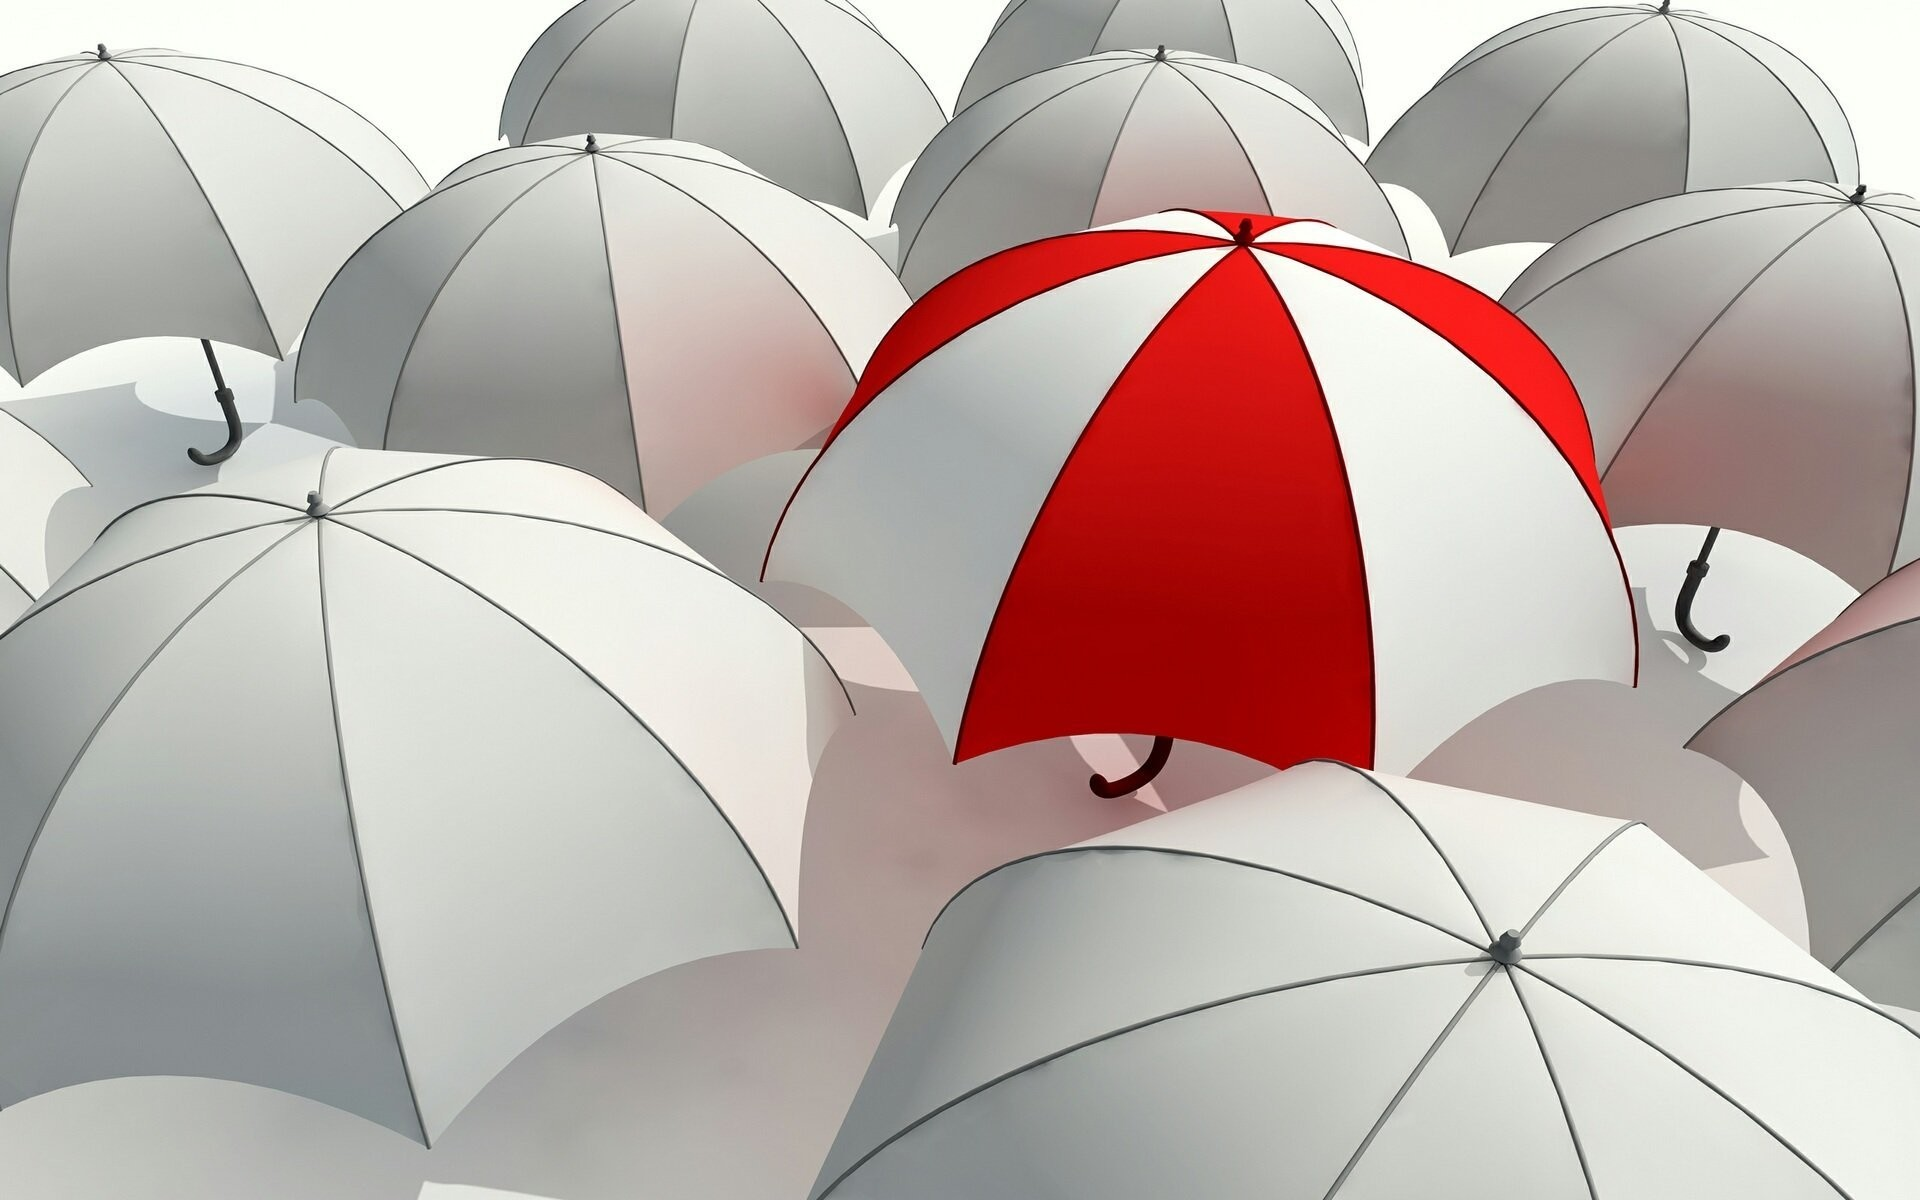 umbrella umbrella umbrella grayness contrast red white grey stand out from  the crowd